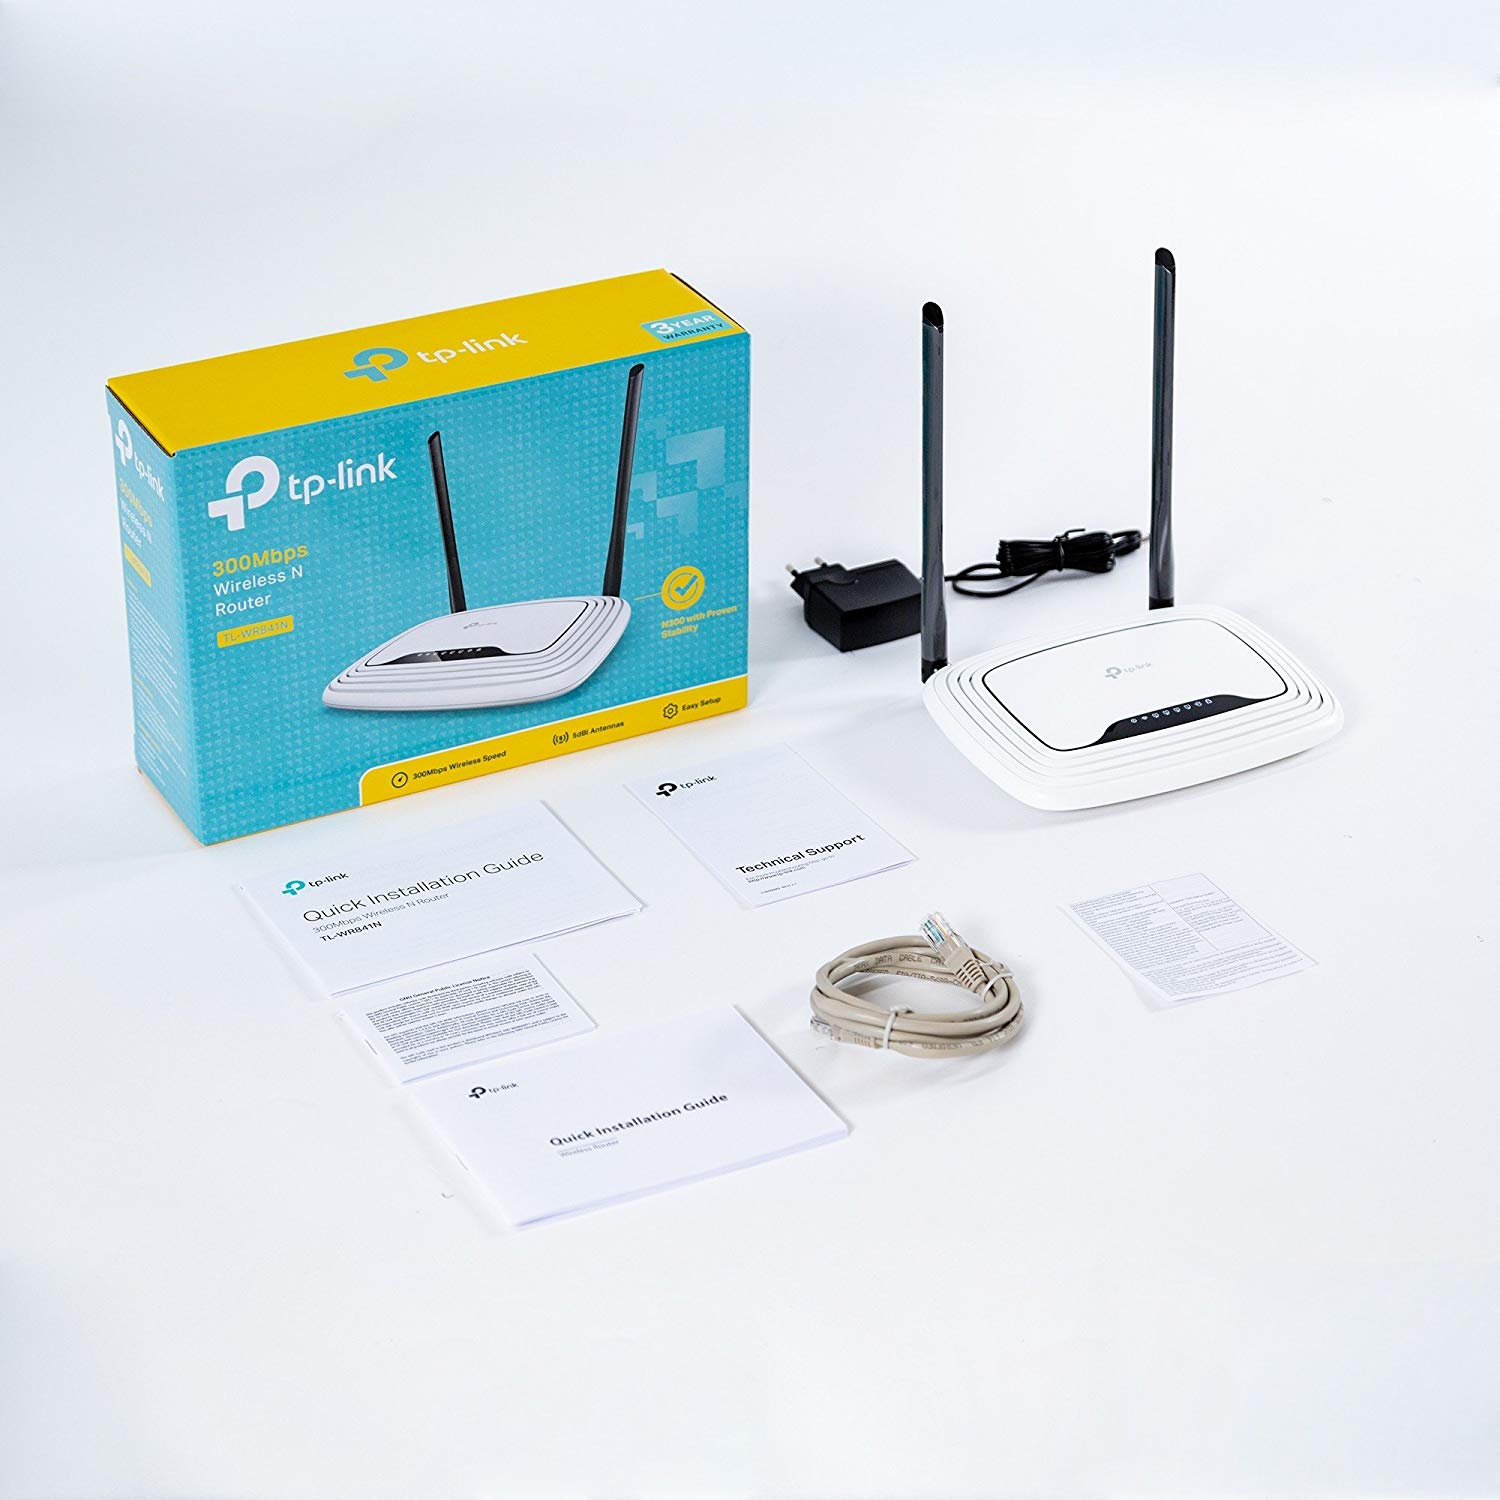 TL-WR841N 2 x 5dBi High Power Antennas TP-Link N300 Wireless Wi-Fi Router